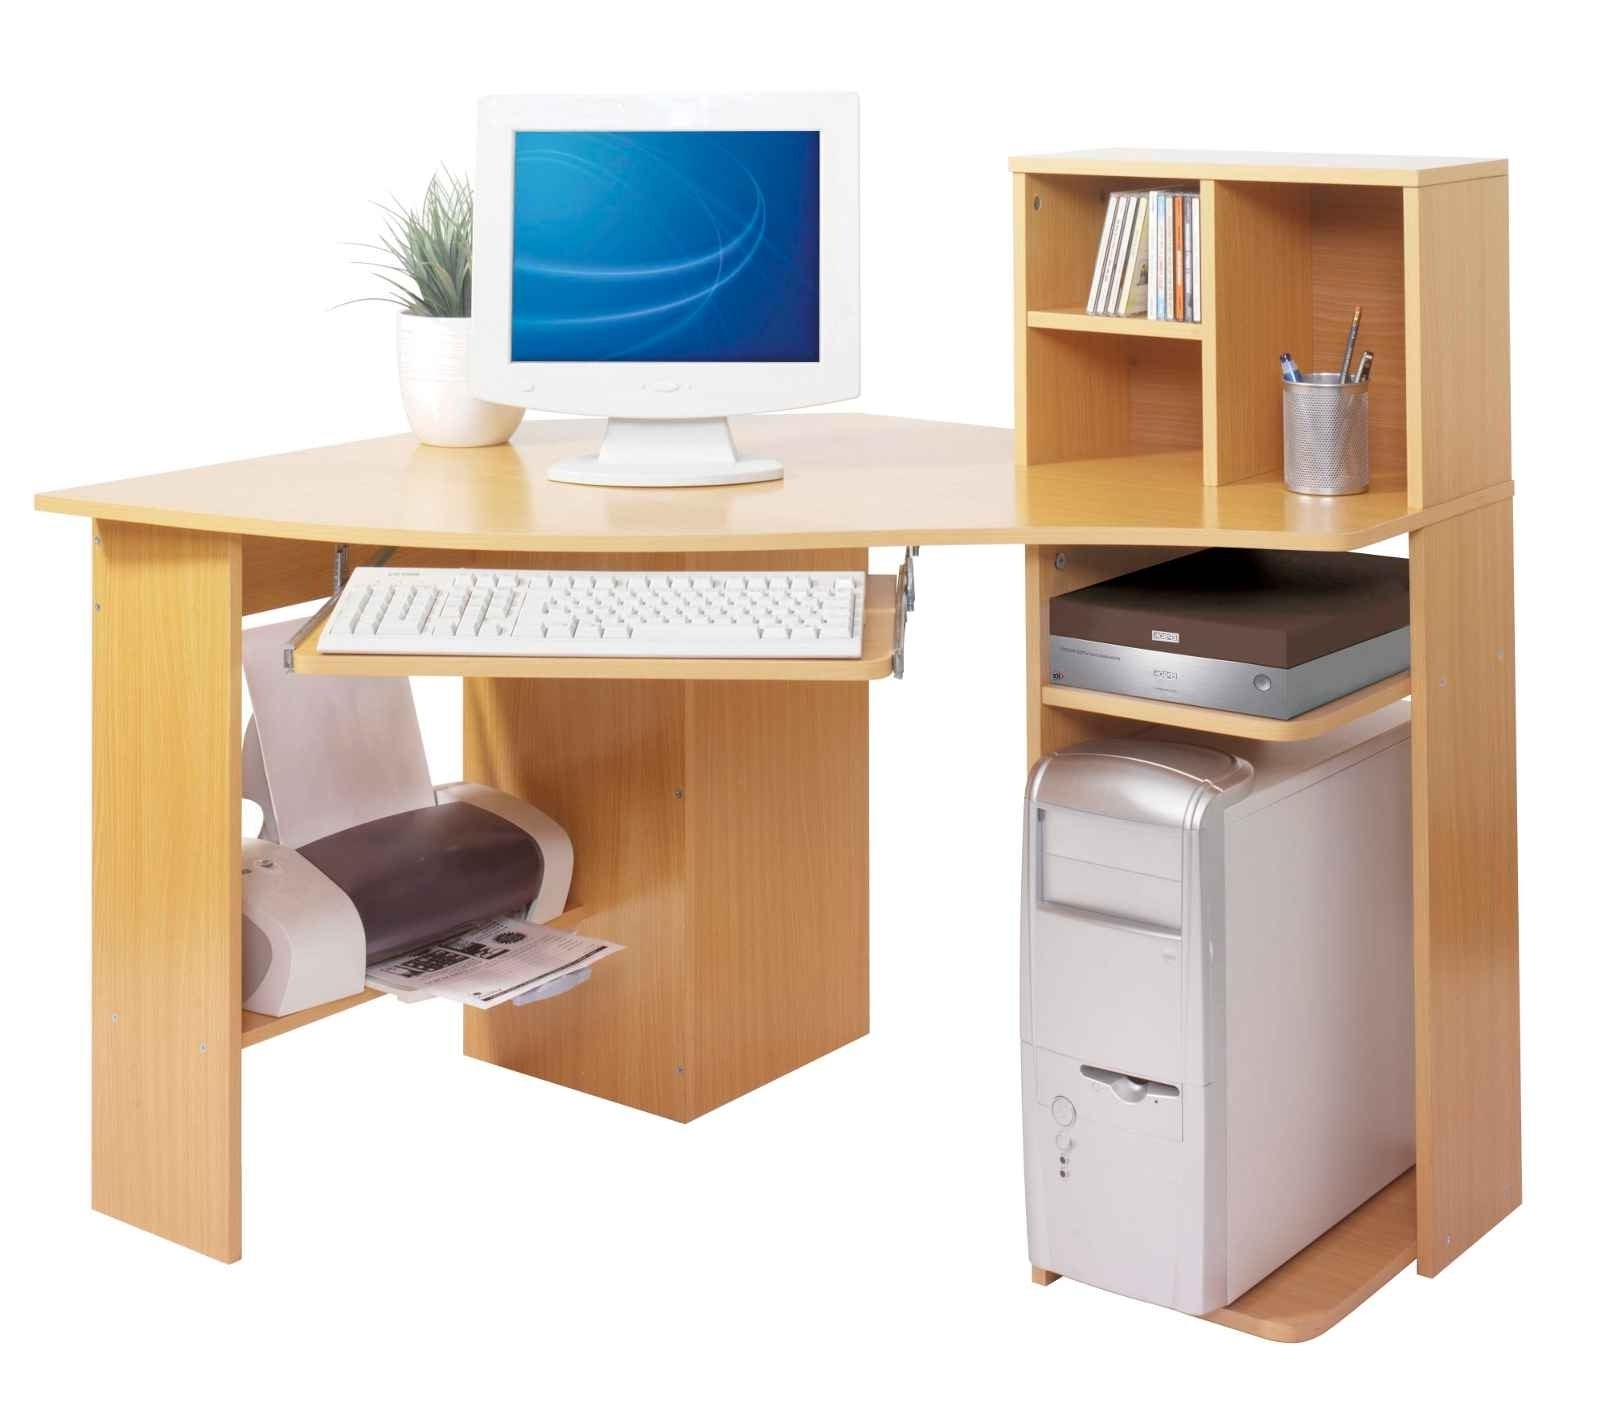 2018 Computer Desks With Printer Shelf Within Corner Computer Desk With Printer Shelf Furniture Light Brown And (View 1 of 20)